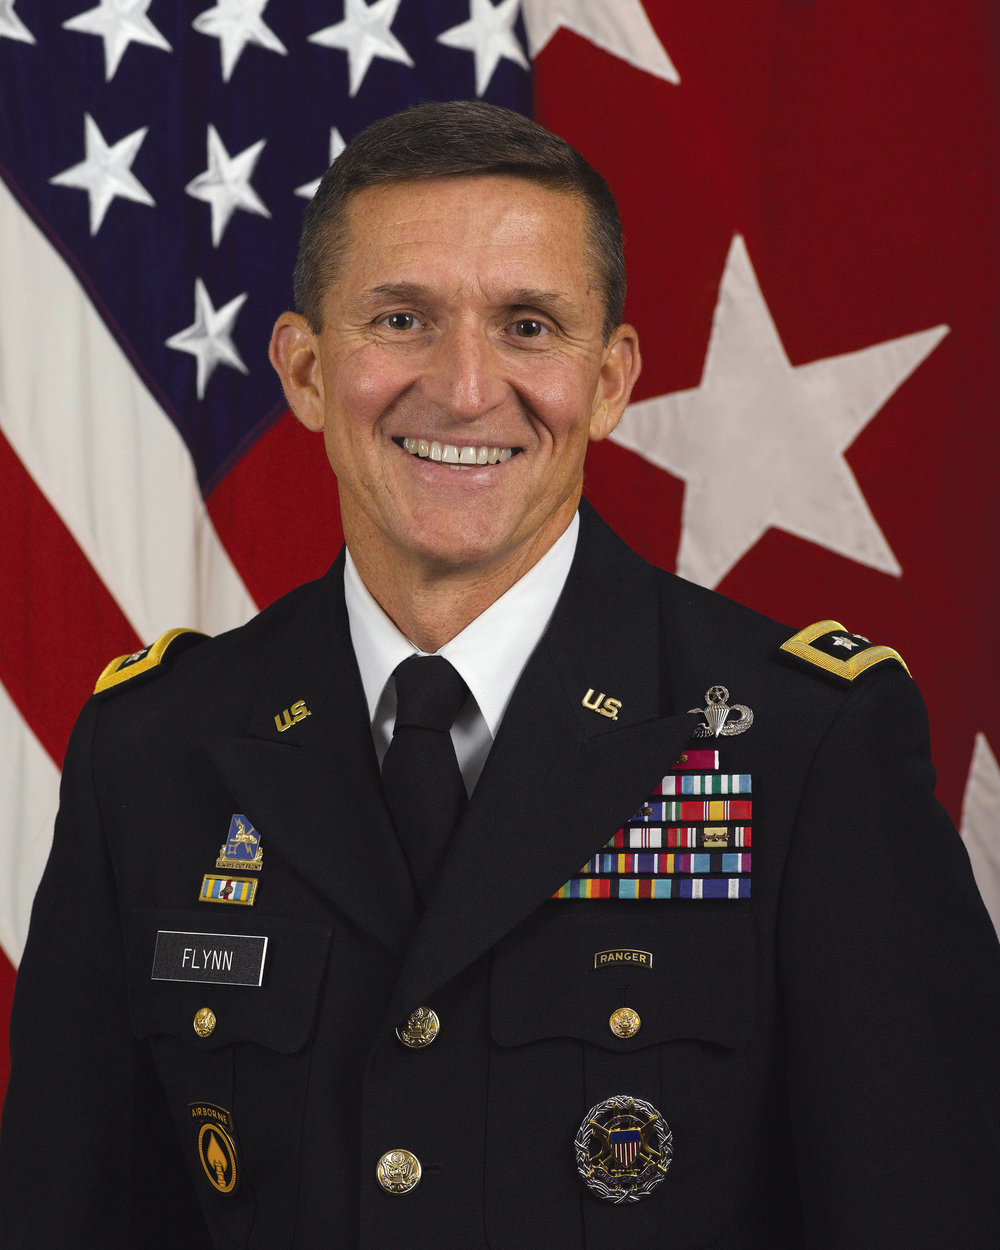 Michael Flynn. Credit: Defense Intelligence Agency.